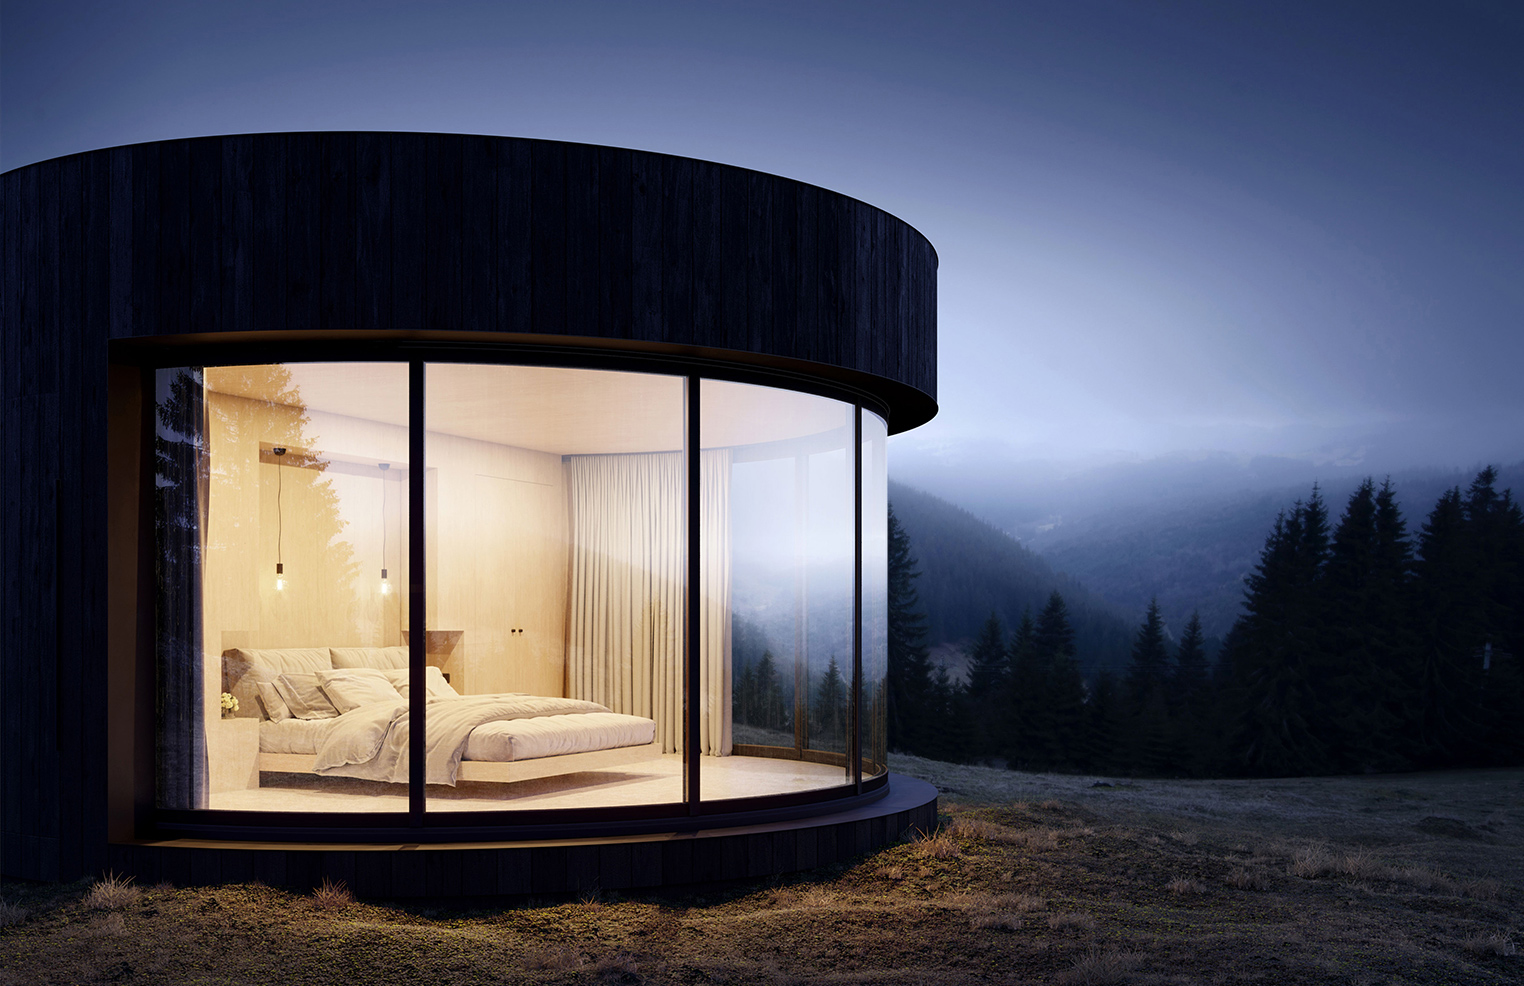 Circular prefab pod offers next-level glamping